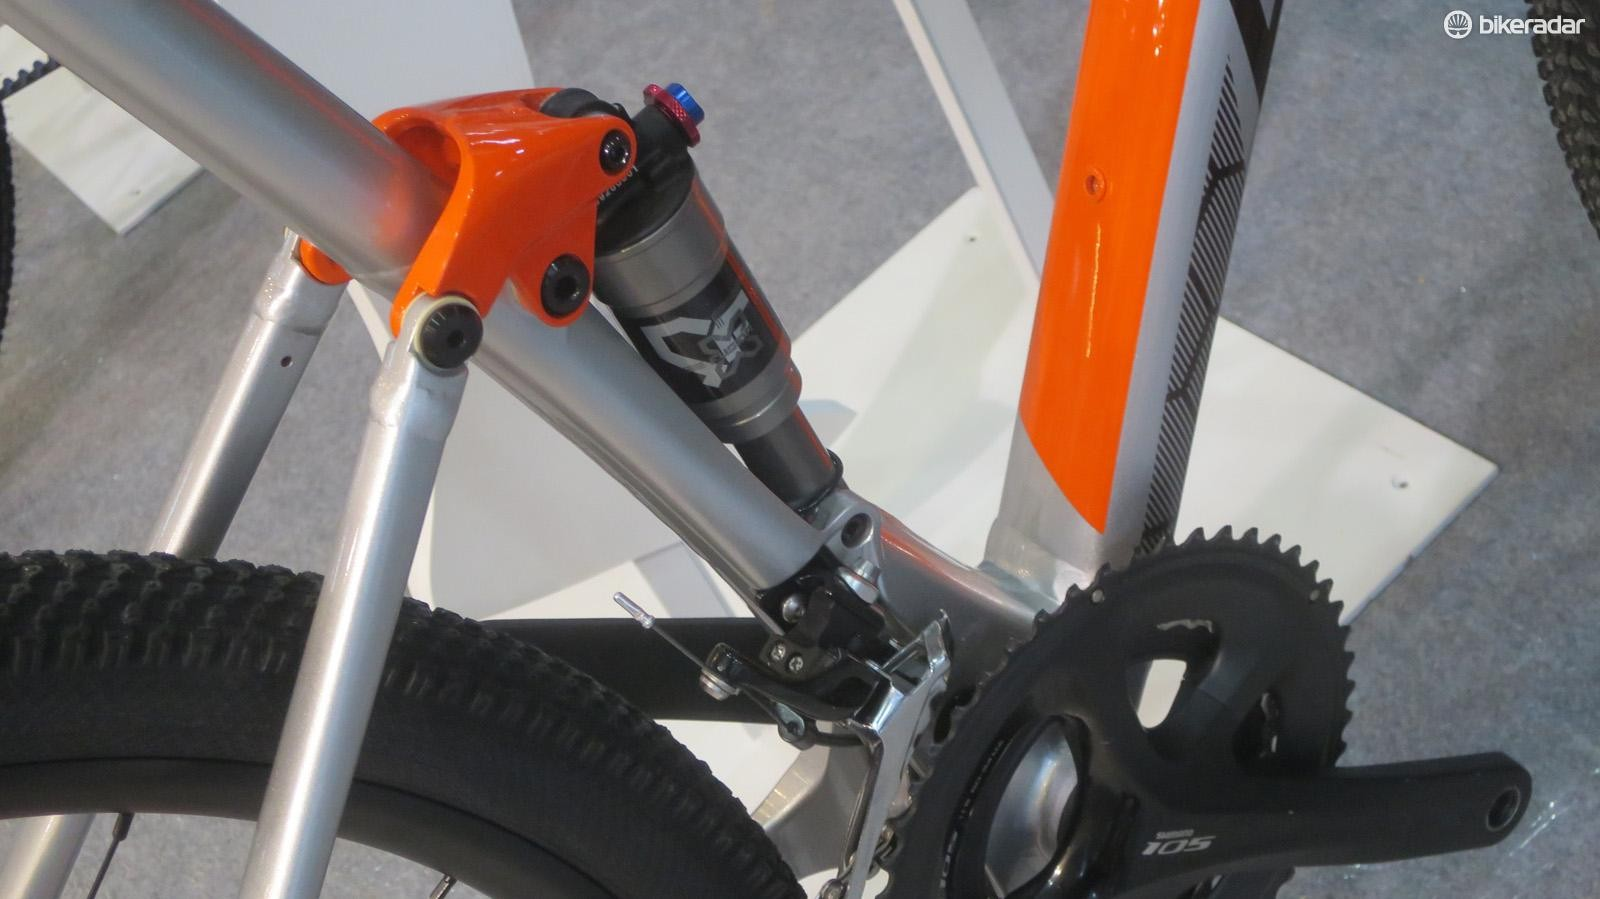 The short-travel linkage rear end is controlled with an X-Fusion air shock complete with lock out